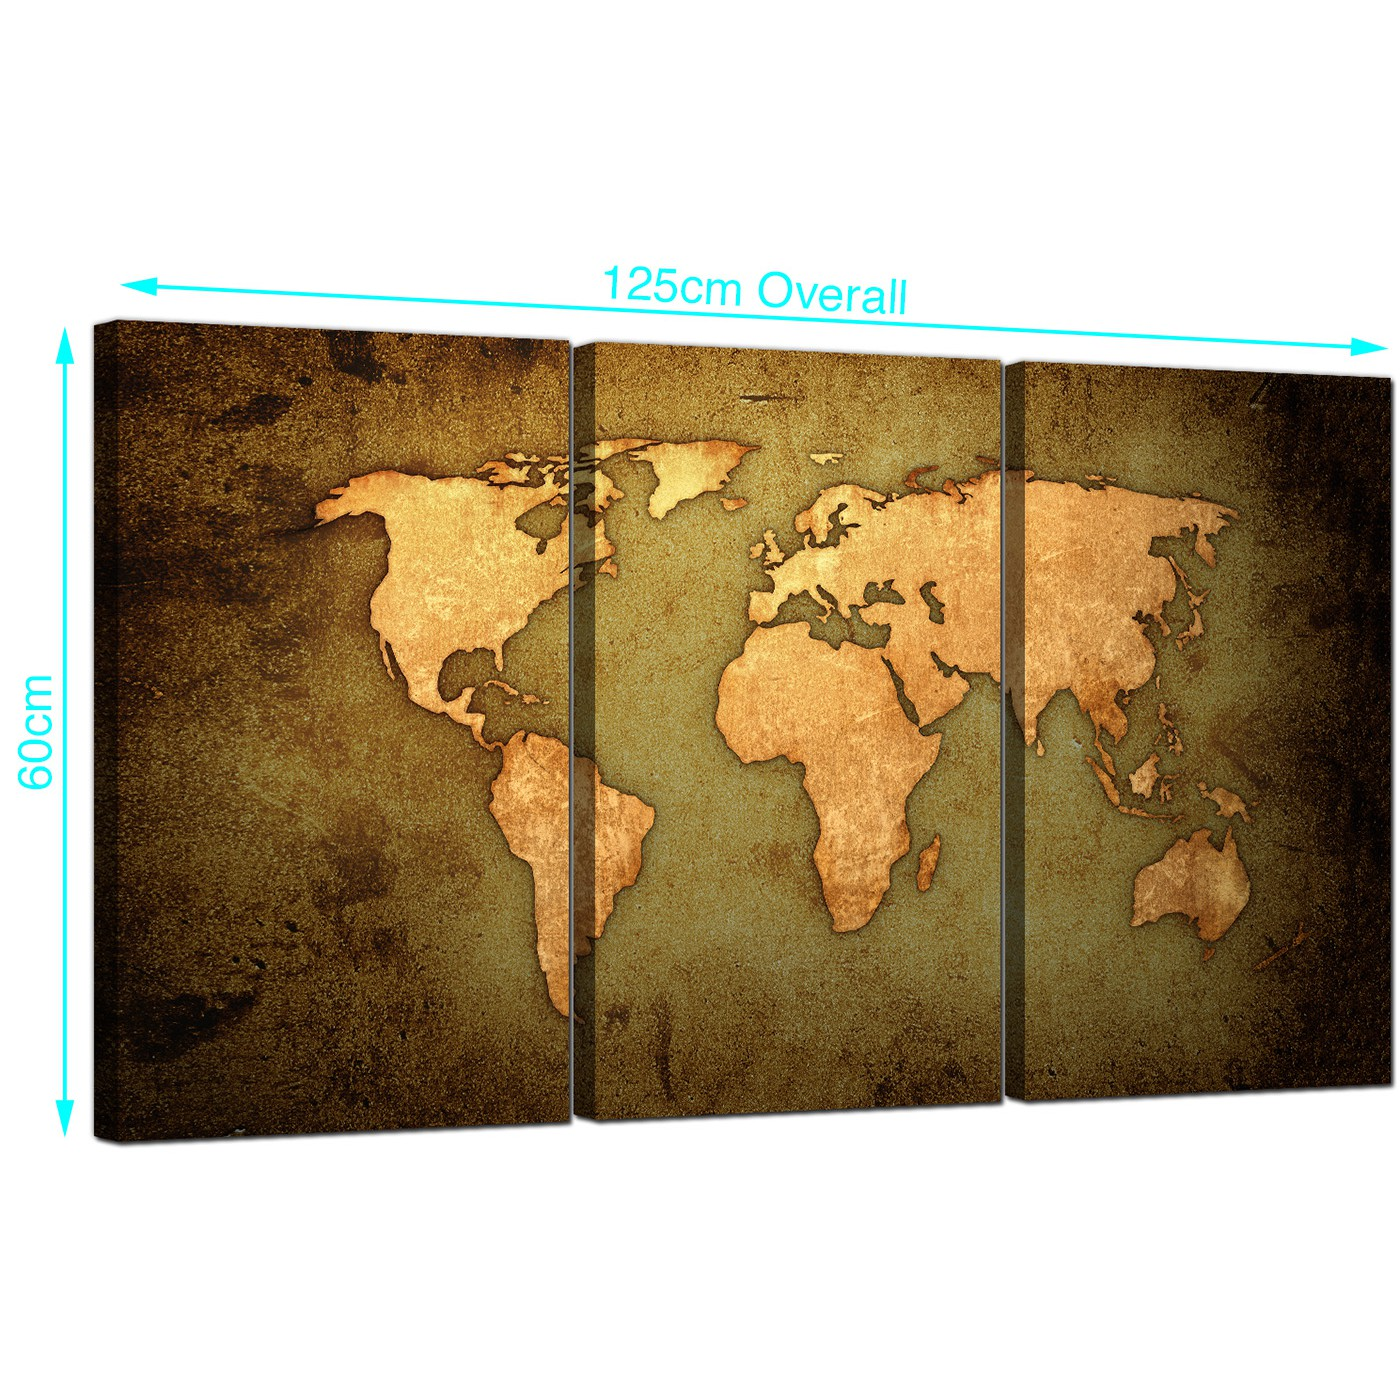 Vintage world map canvas art set of three for your study display gallery item 1 set of three world map canvas prints uk 125cm x 60cm 3189 display gallery item 2 gumiabroncs Image collections